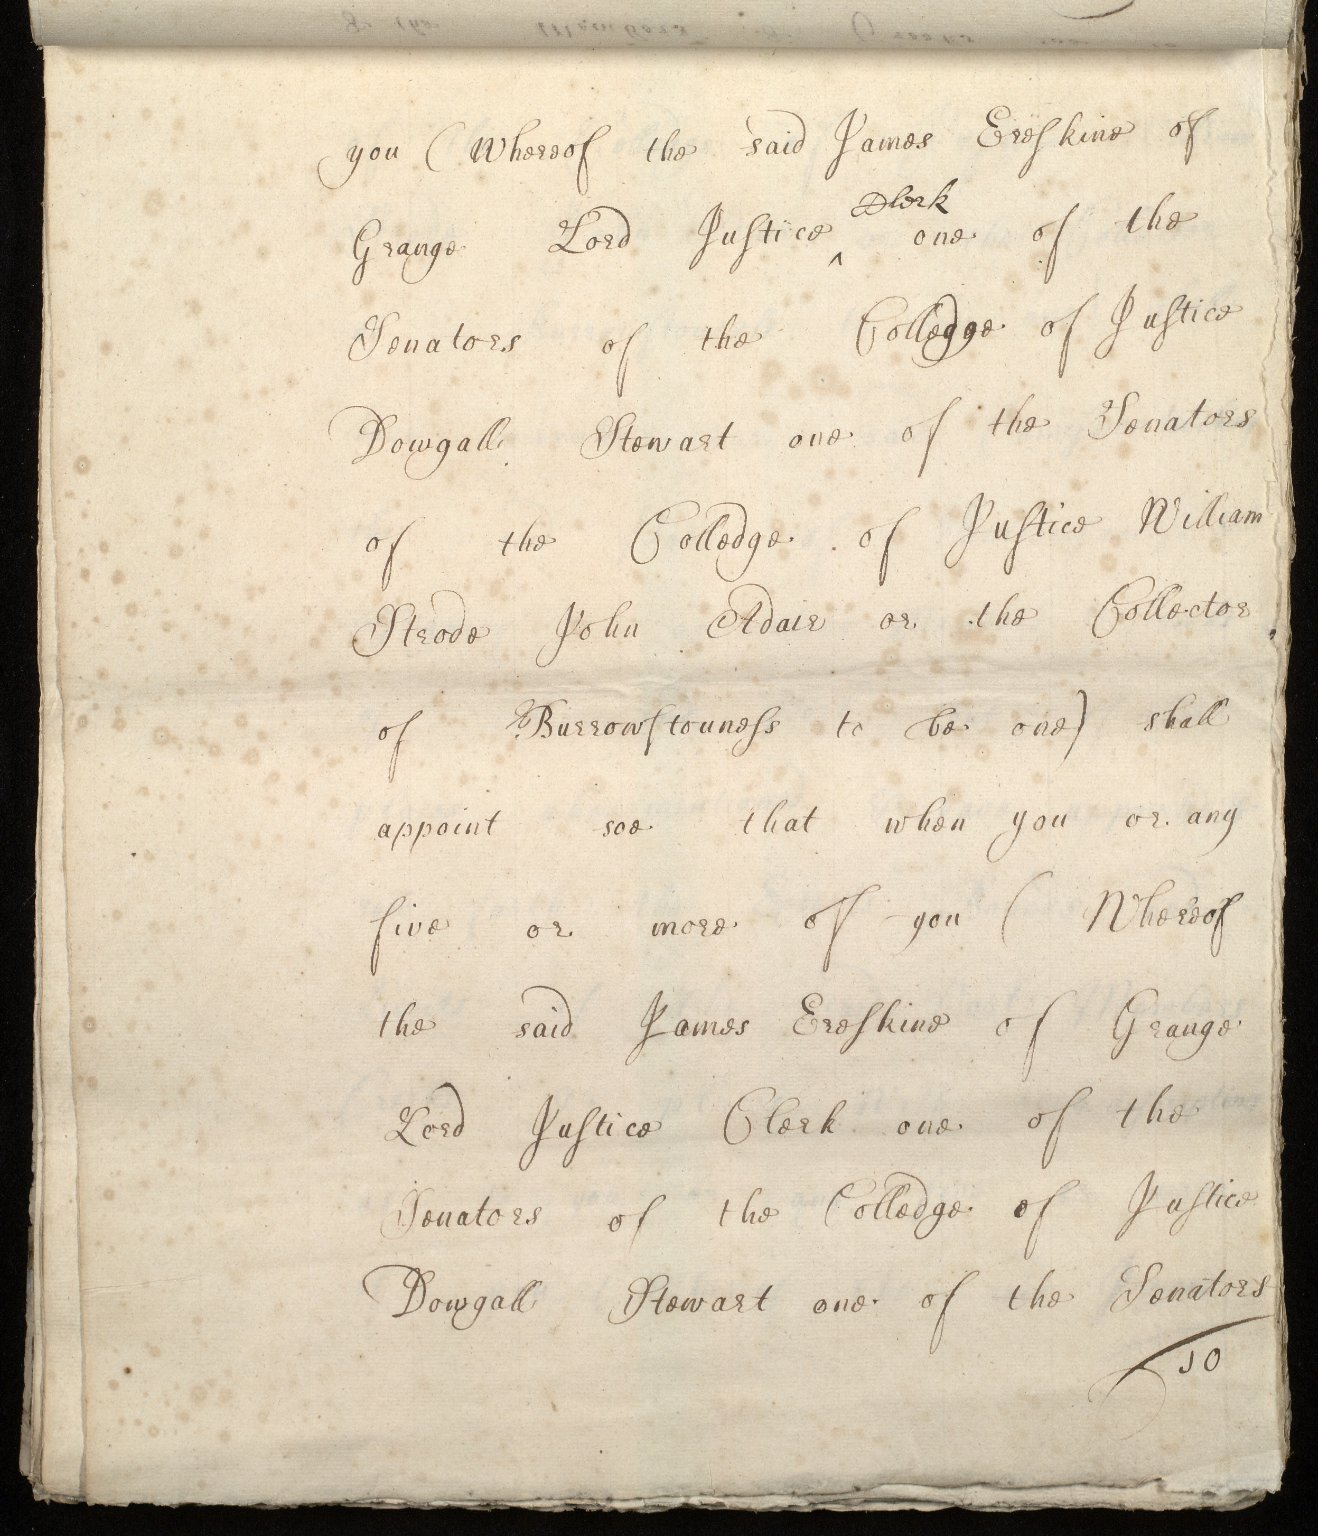 [Commission by Queen Anne to John Adair and others to appoint the town of Borrowstounness (Bo'ness) to be a port and to fix the bounds thereof] [10 of 39]